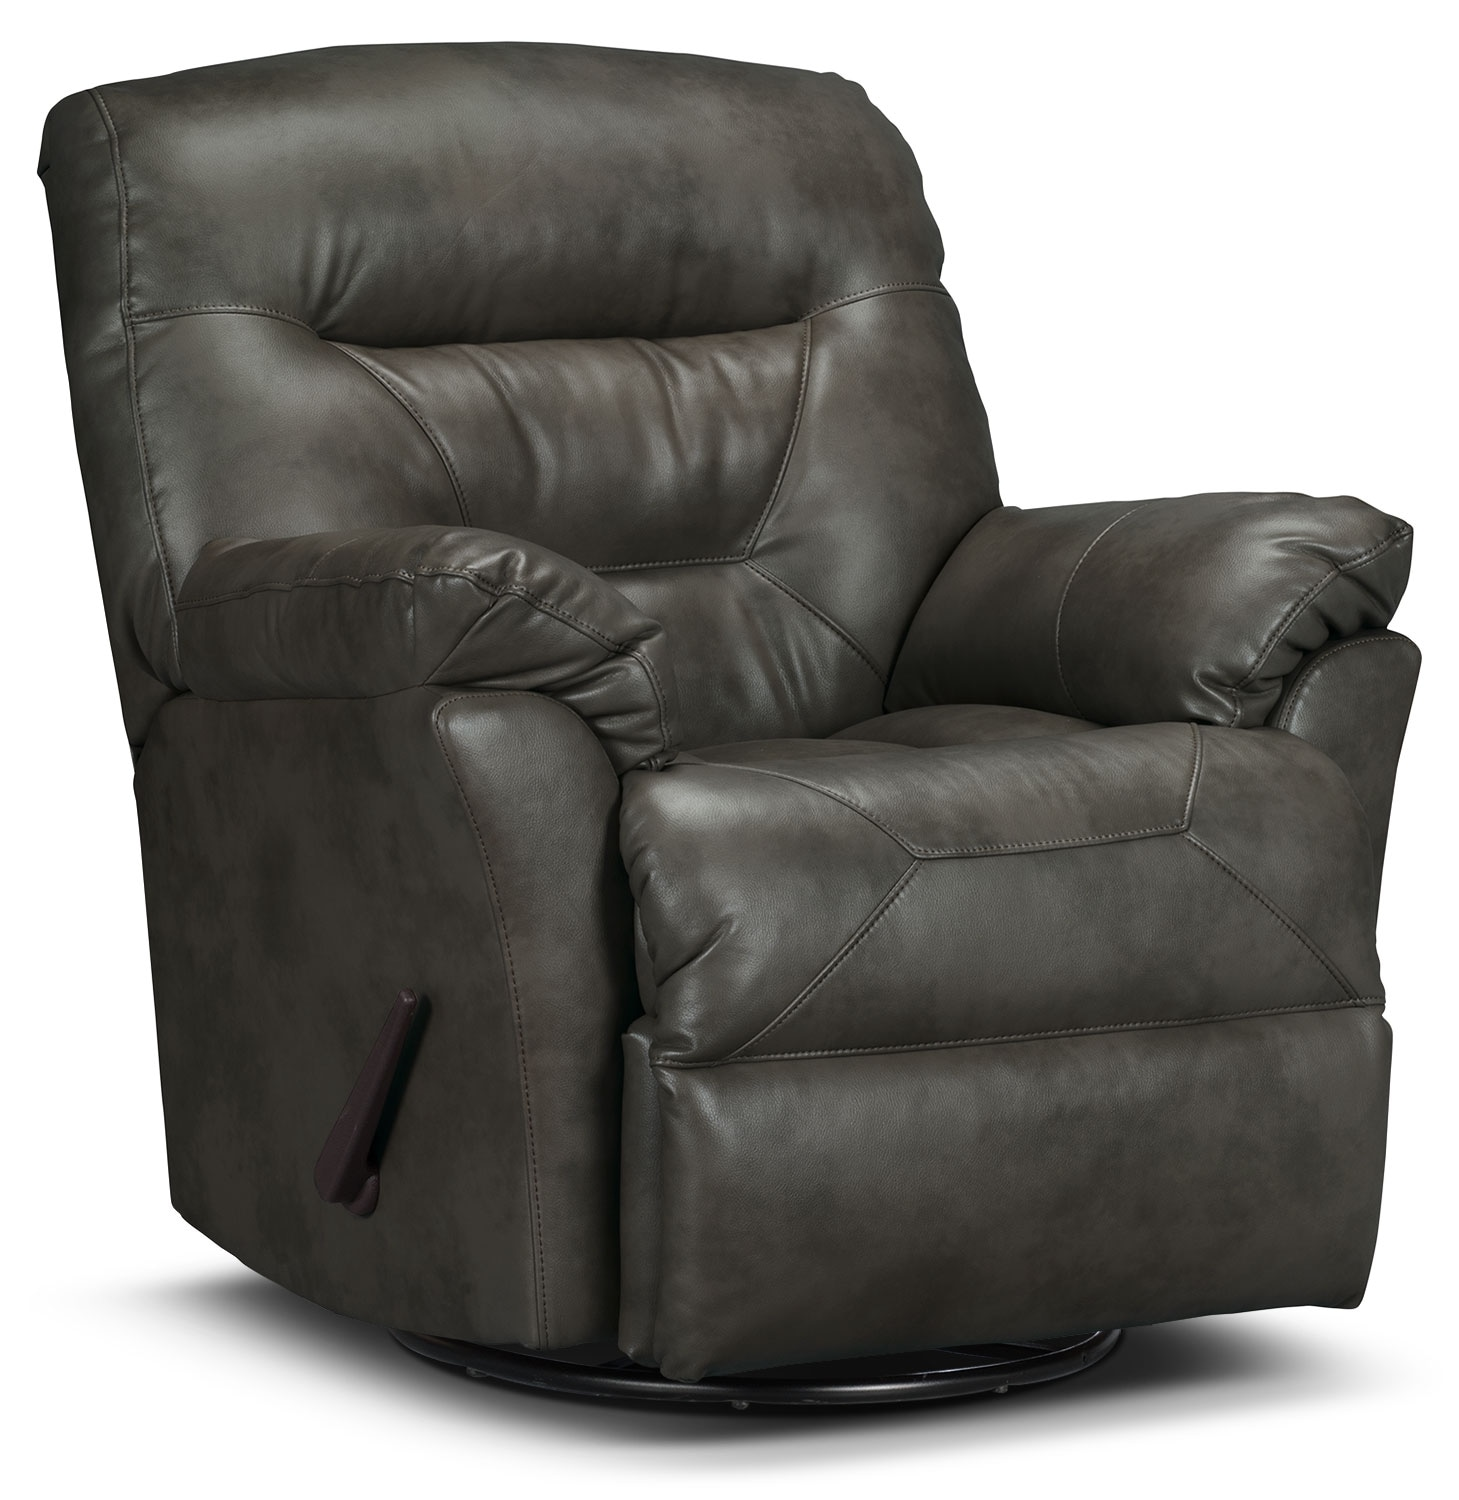 Designed2B Recliner 4579 Leather-Look Fabric Swivel Glider Recliner - Seal